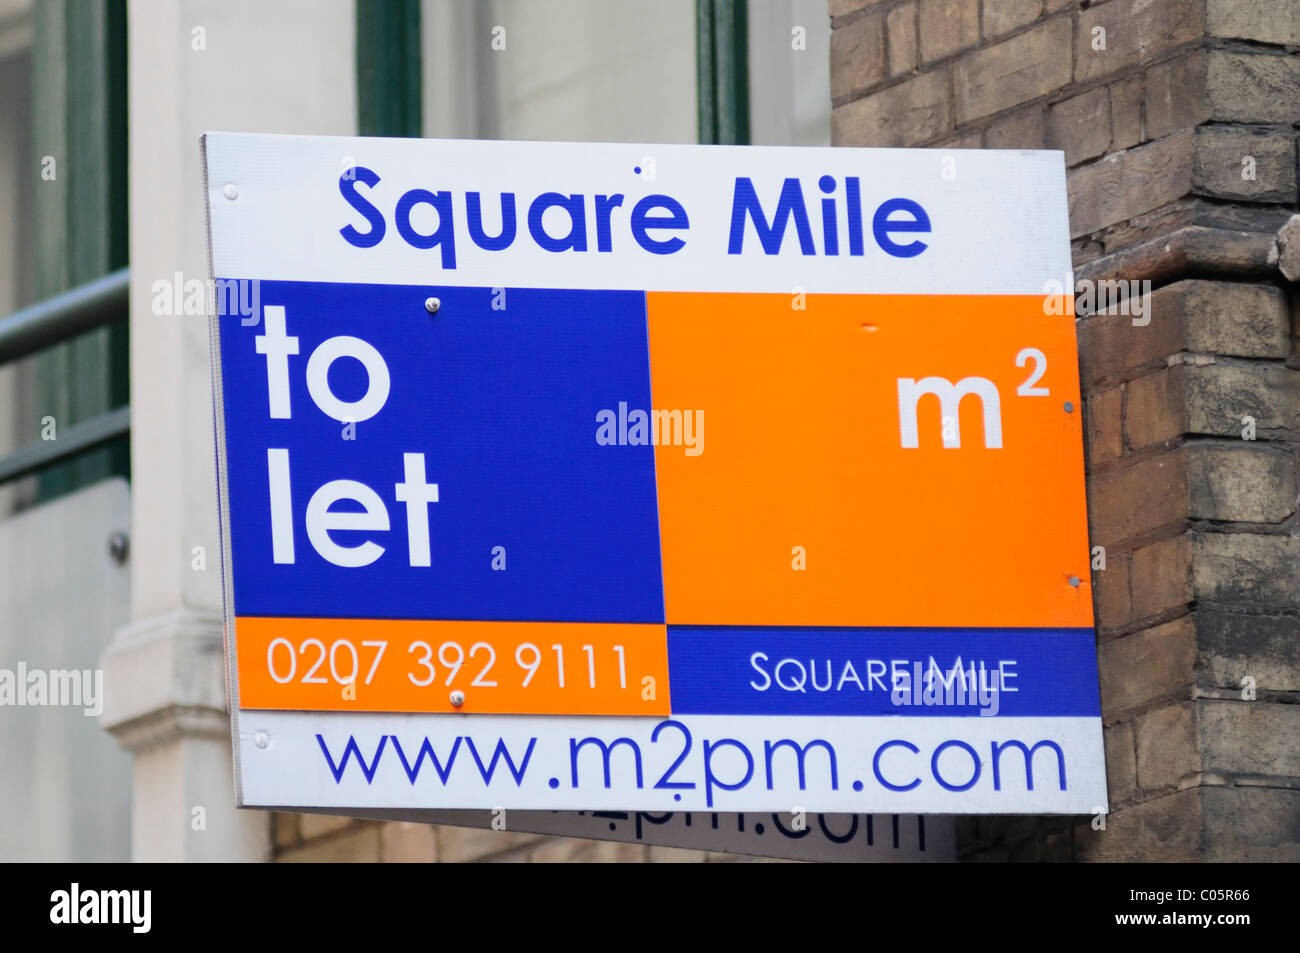 Square Mile property to let estate agents board, London, England, UK - Stock Image